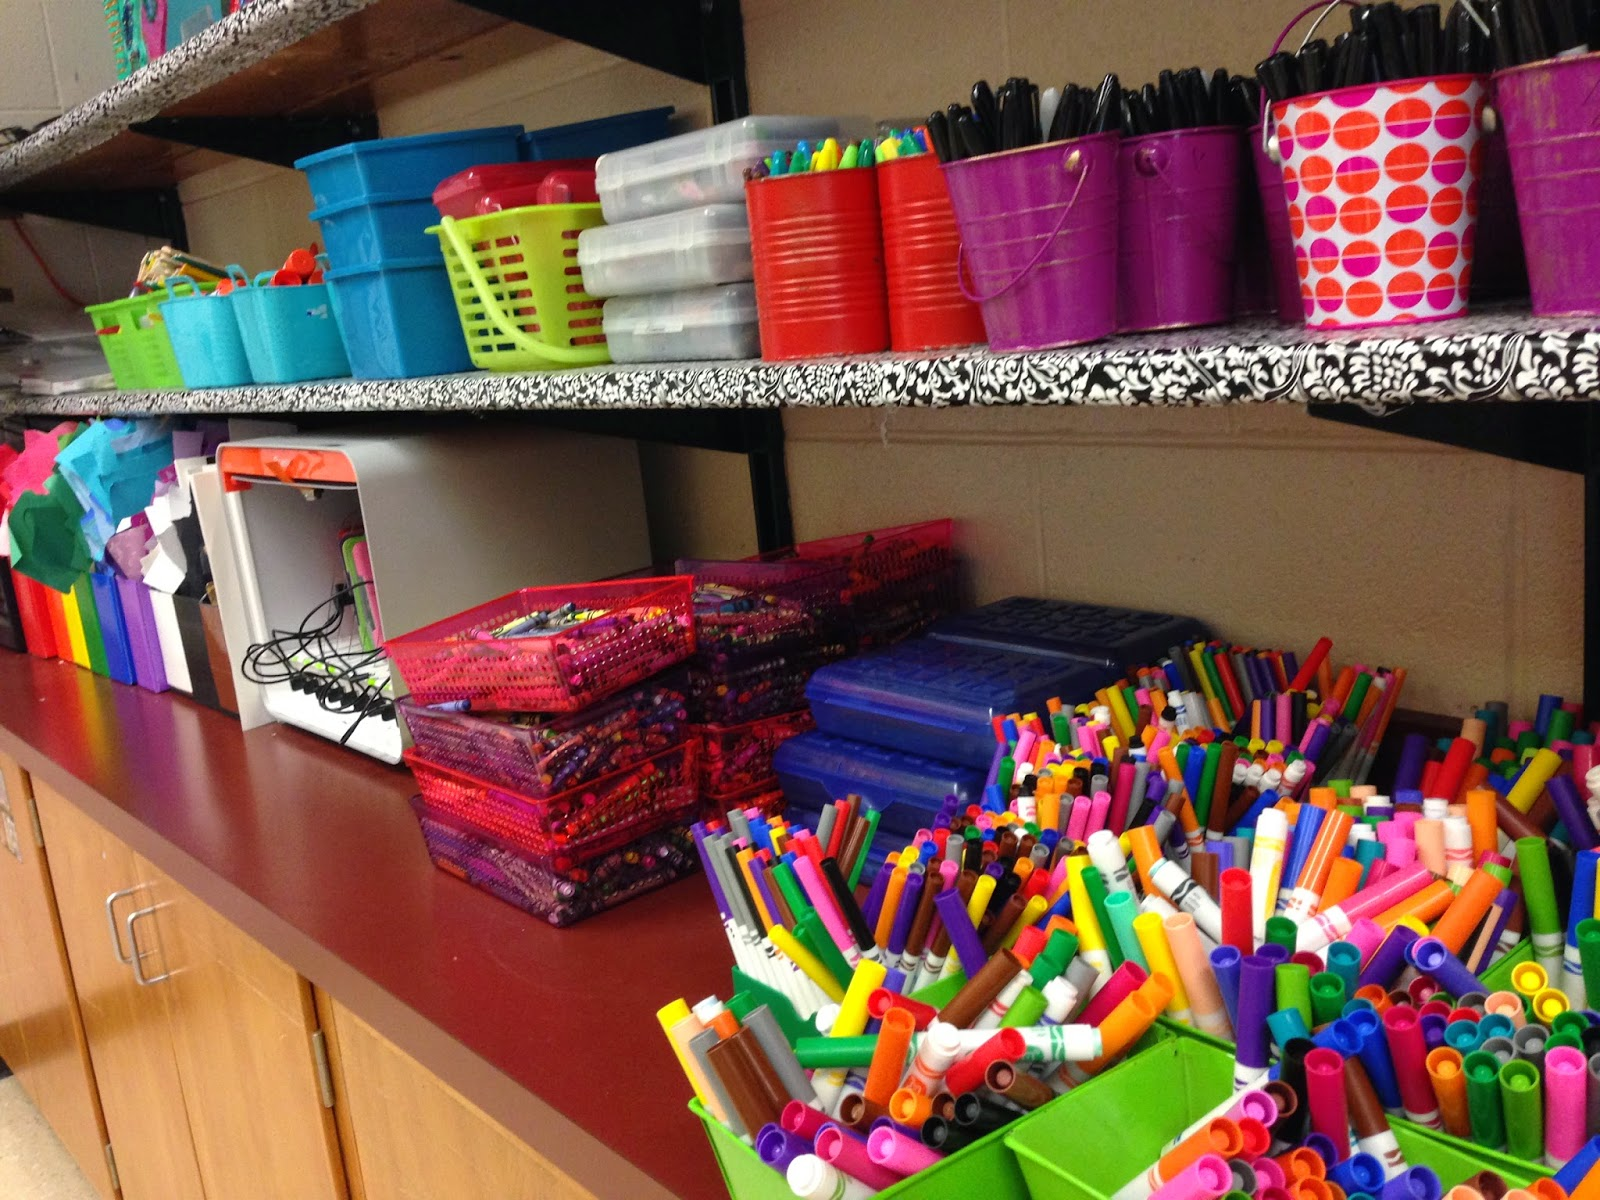 Organize supplies by table and other  tips to save time in the art room on Expressive Monkey's Blog.